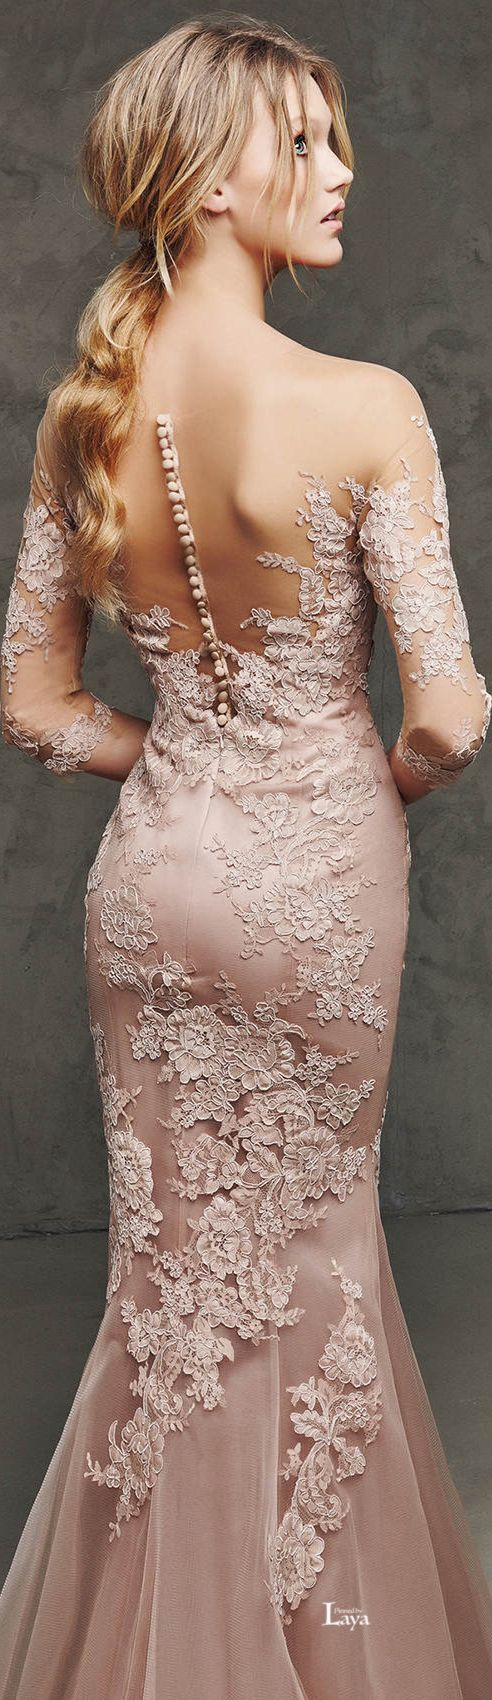 love the lace design Love this back detail  Wedding bridal gowns